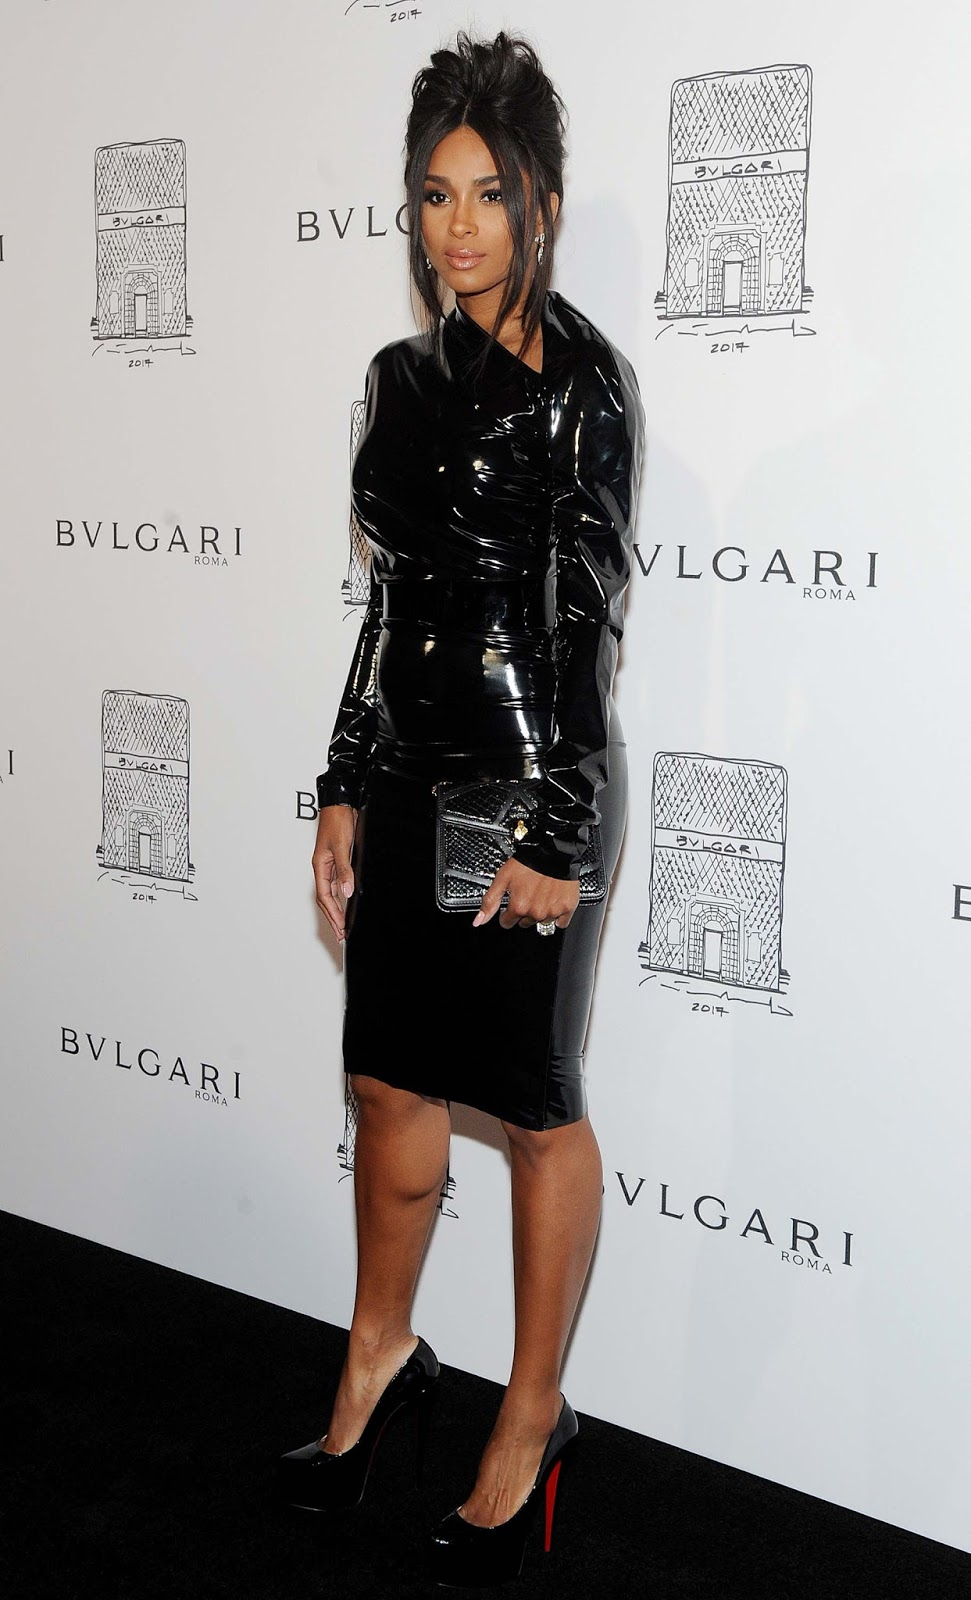 Holly Halston Latex for lovely ladies in leather: ciara in a latex dress